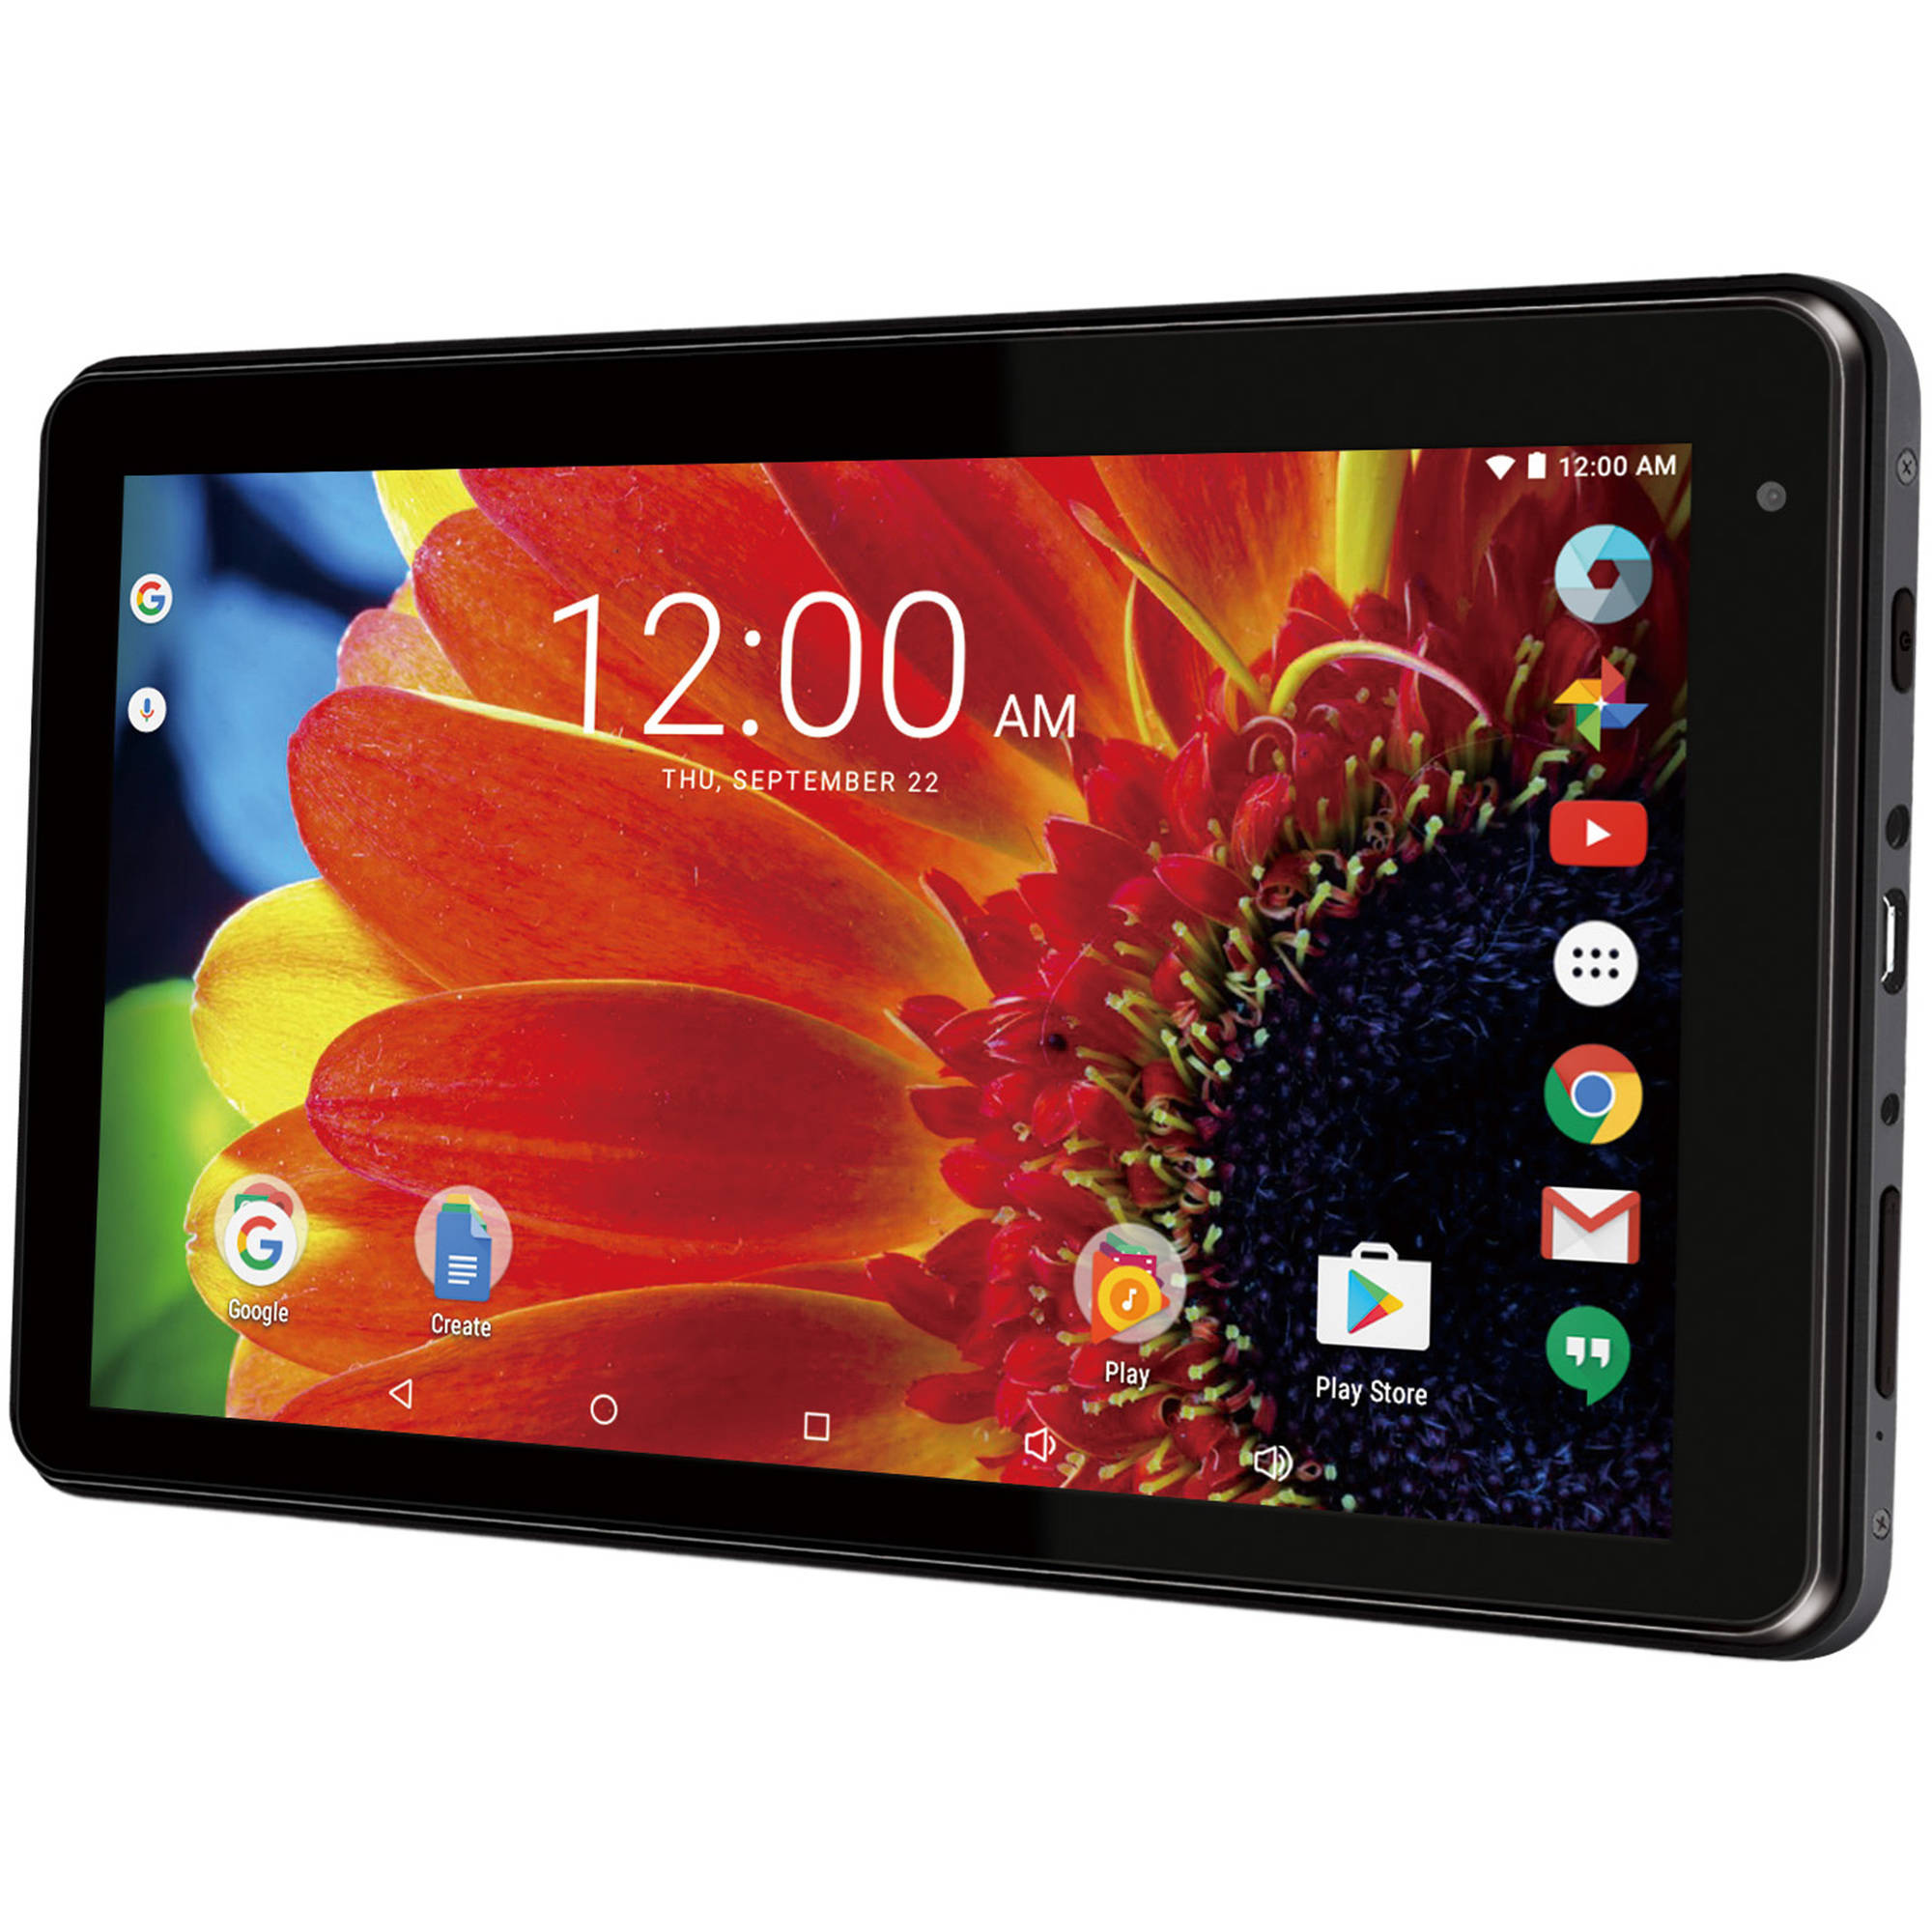 "RCA Voyager with WiFi 7"" Touchscreen Tablet PC Featuring Android 6.0 (Marshmallow) Operating System, Black"